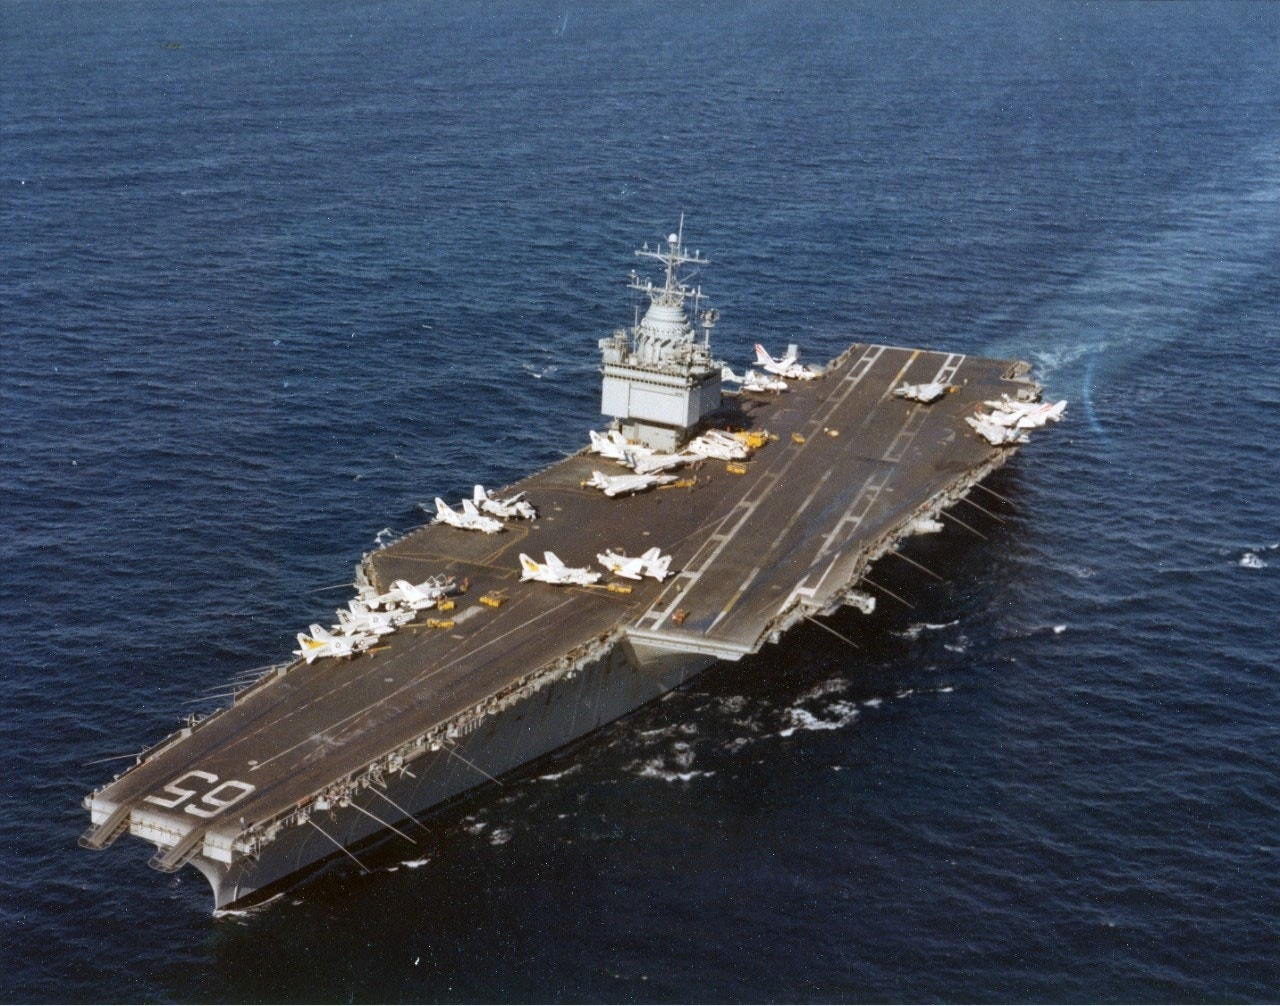 Historic aircraft carriers in pictures | Fox News